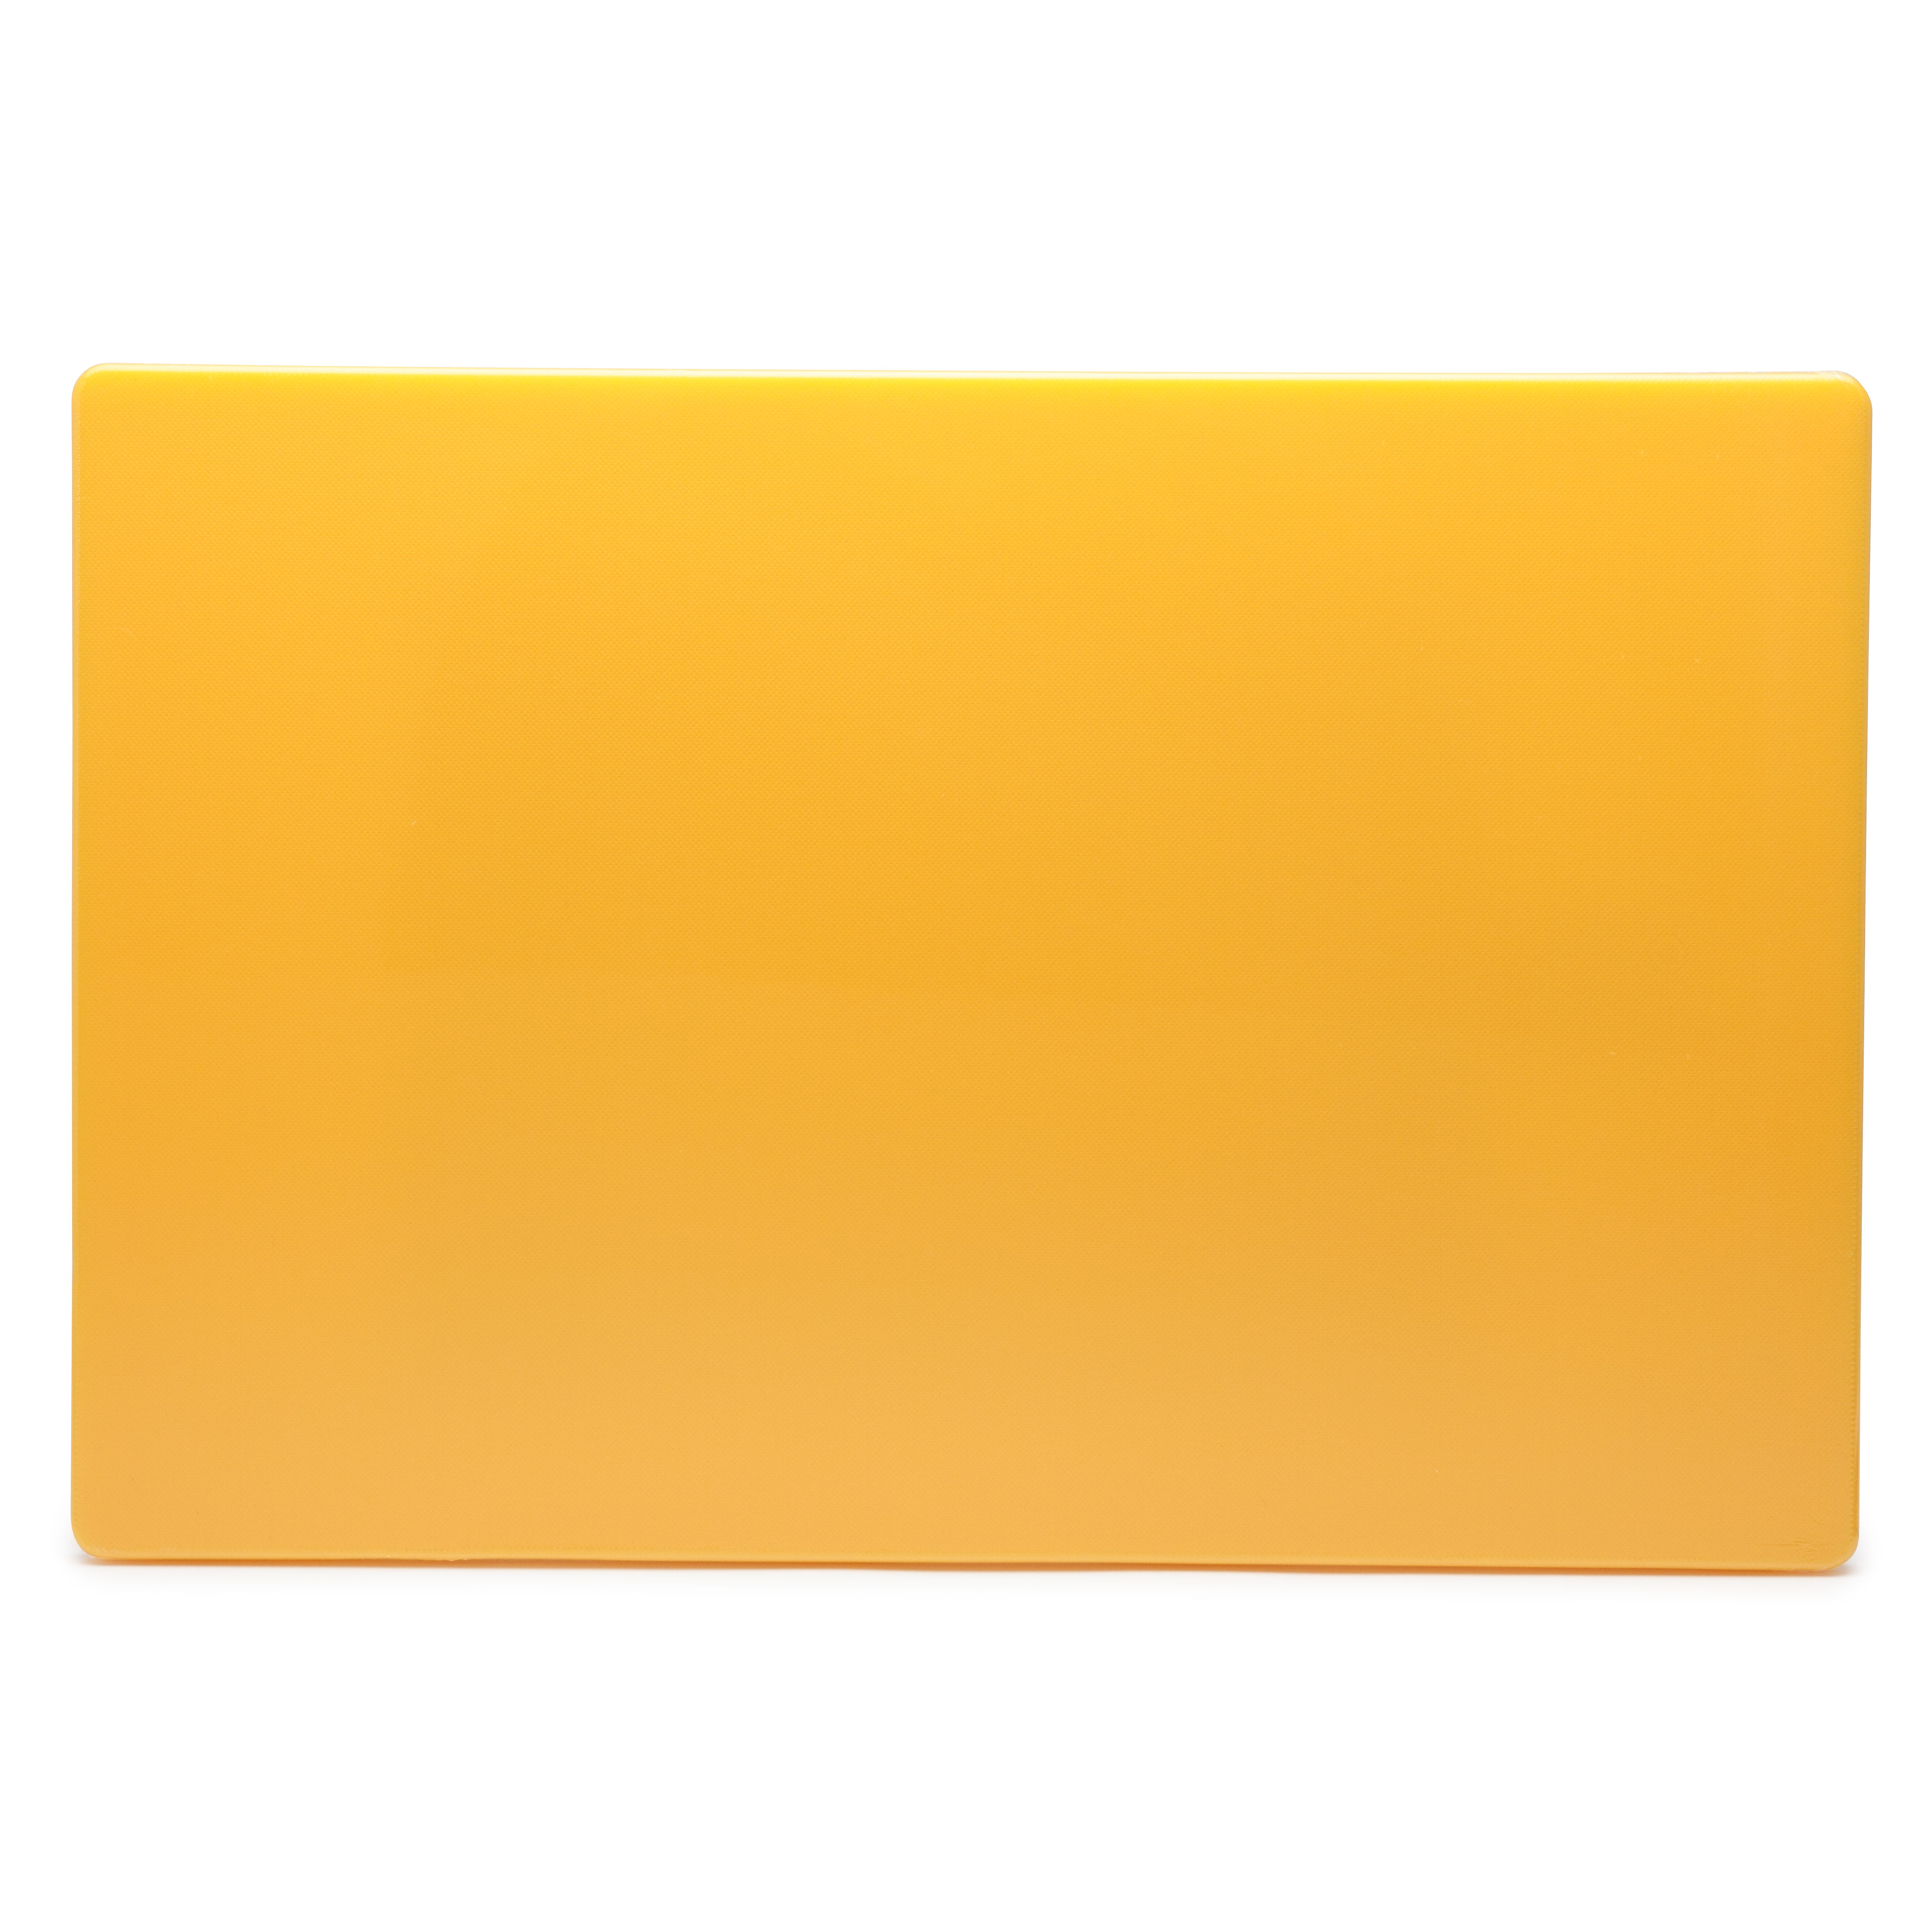 Royal Industries ROY CB 1824 Y cutting board, plastic